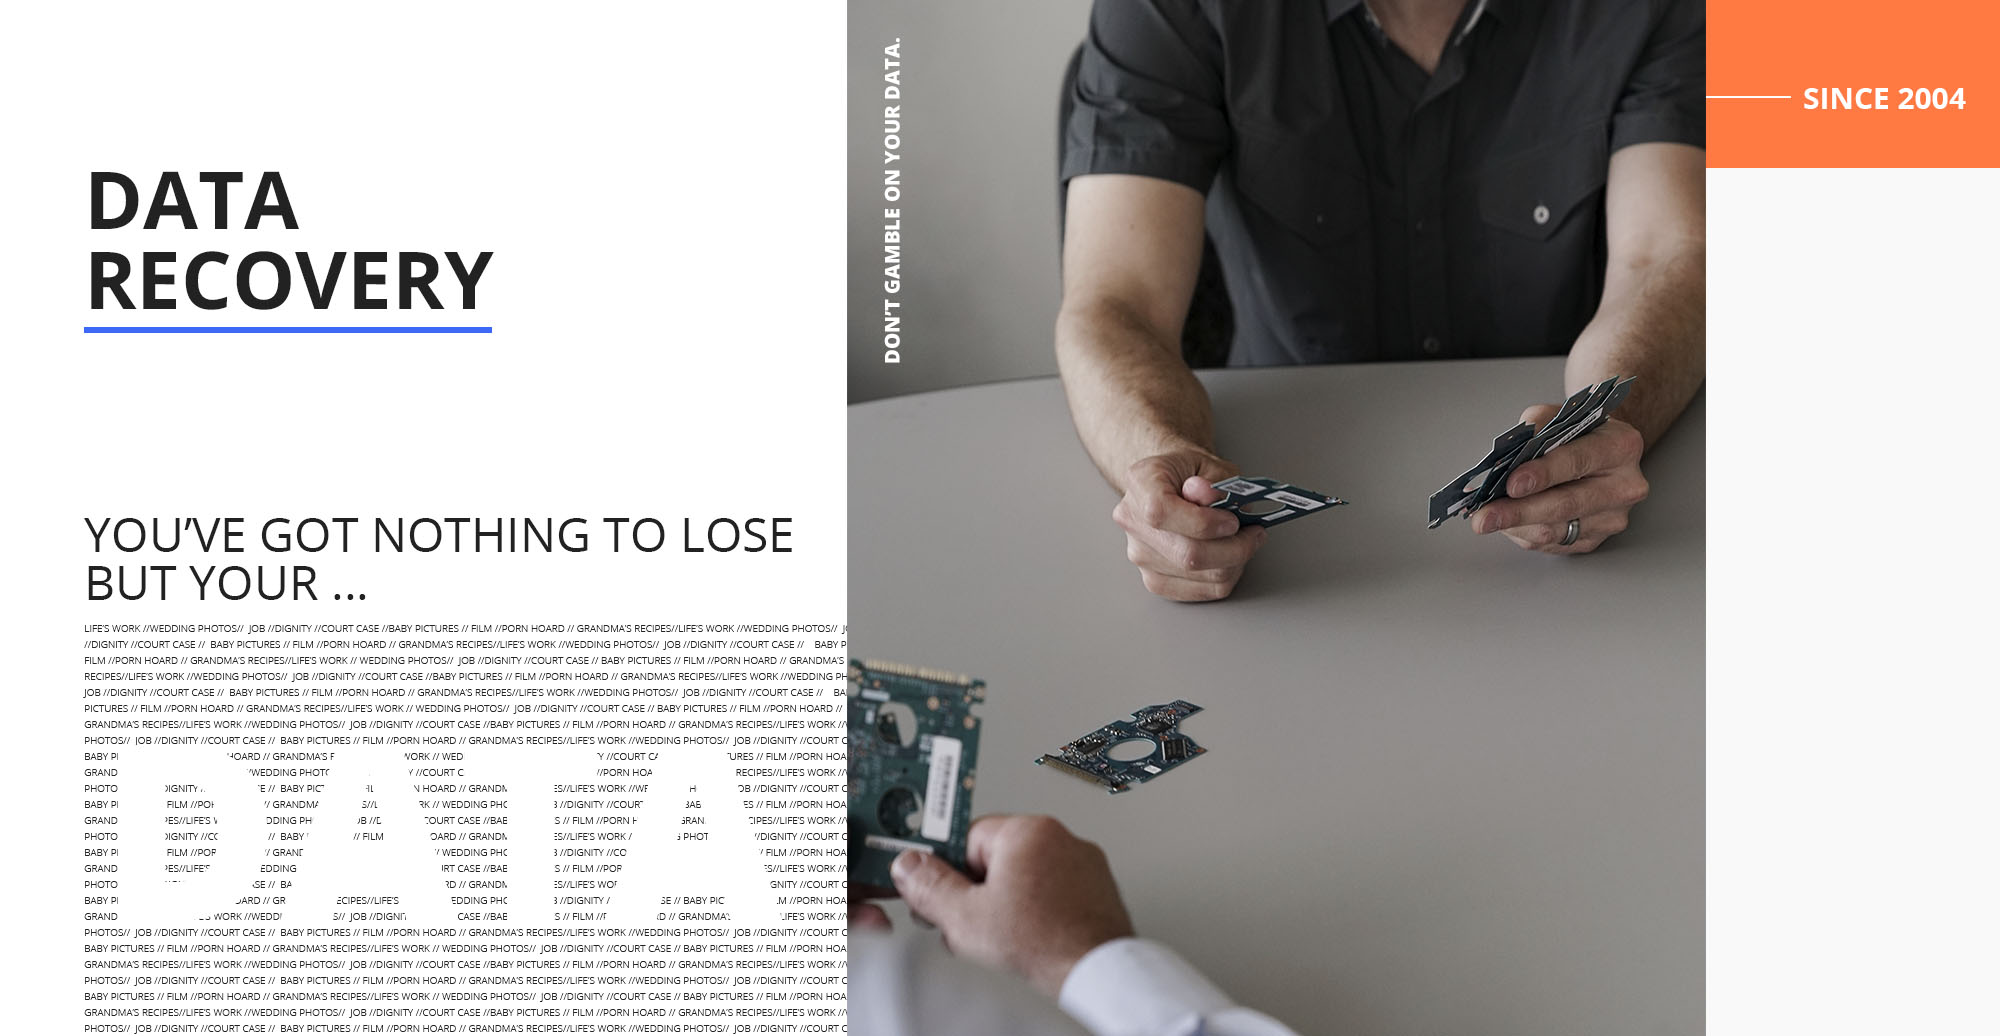 data recovery cover photo - you've got nothing to lose